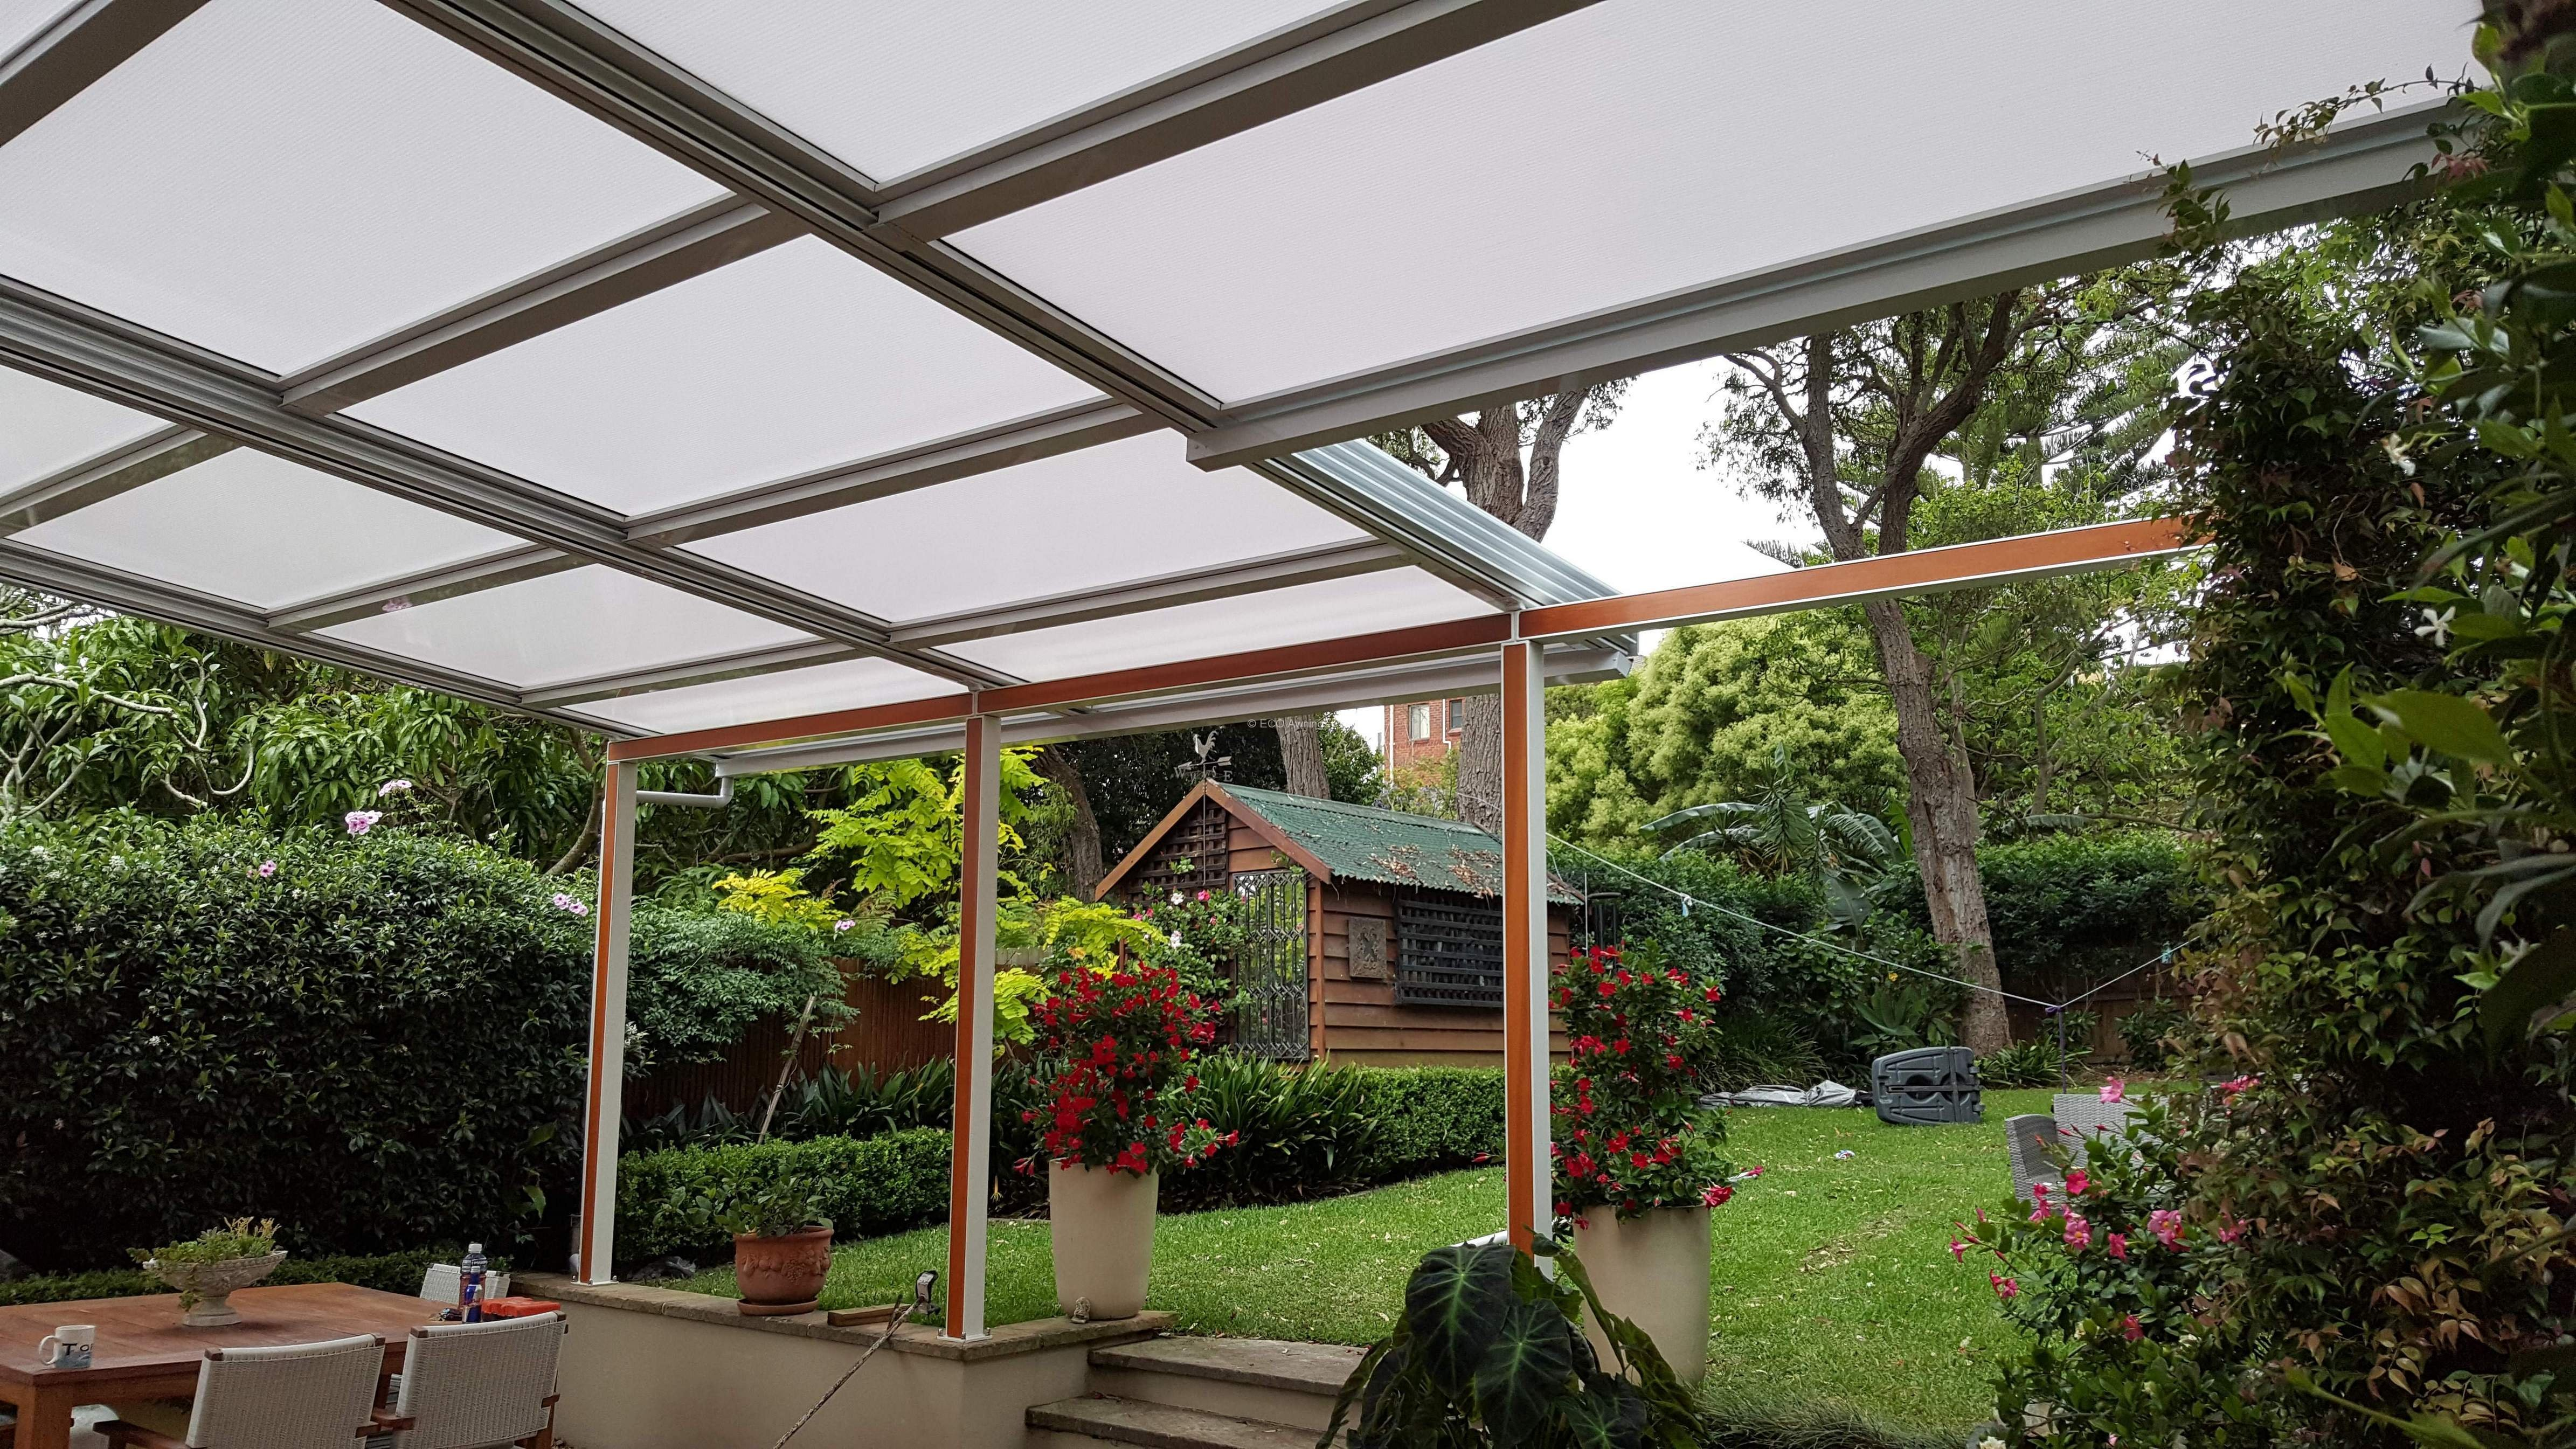 Retracta roof polycarb opal with 3 bays 4 panels roof for 3 bays